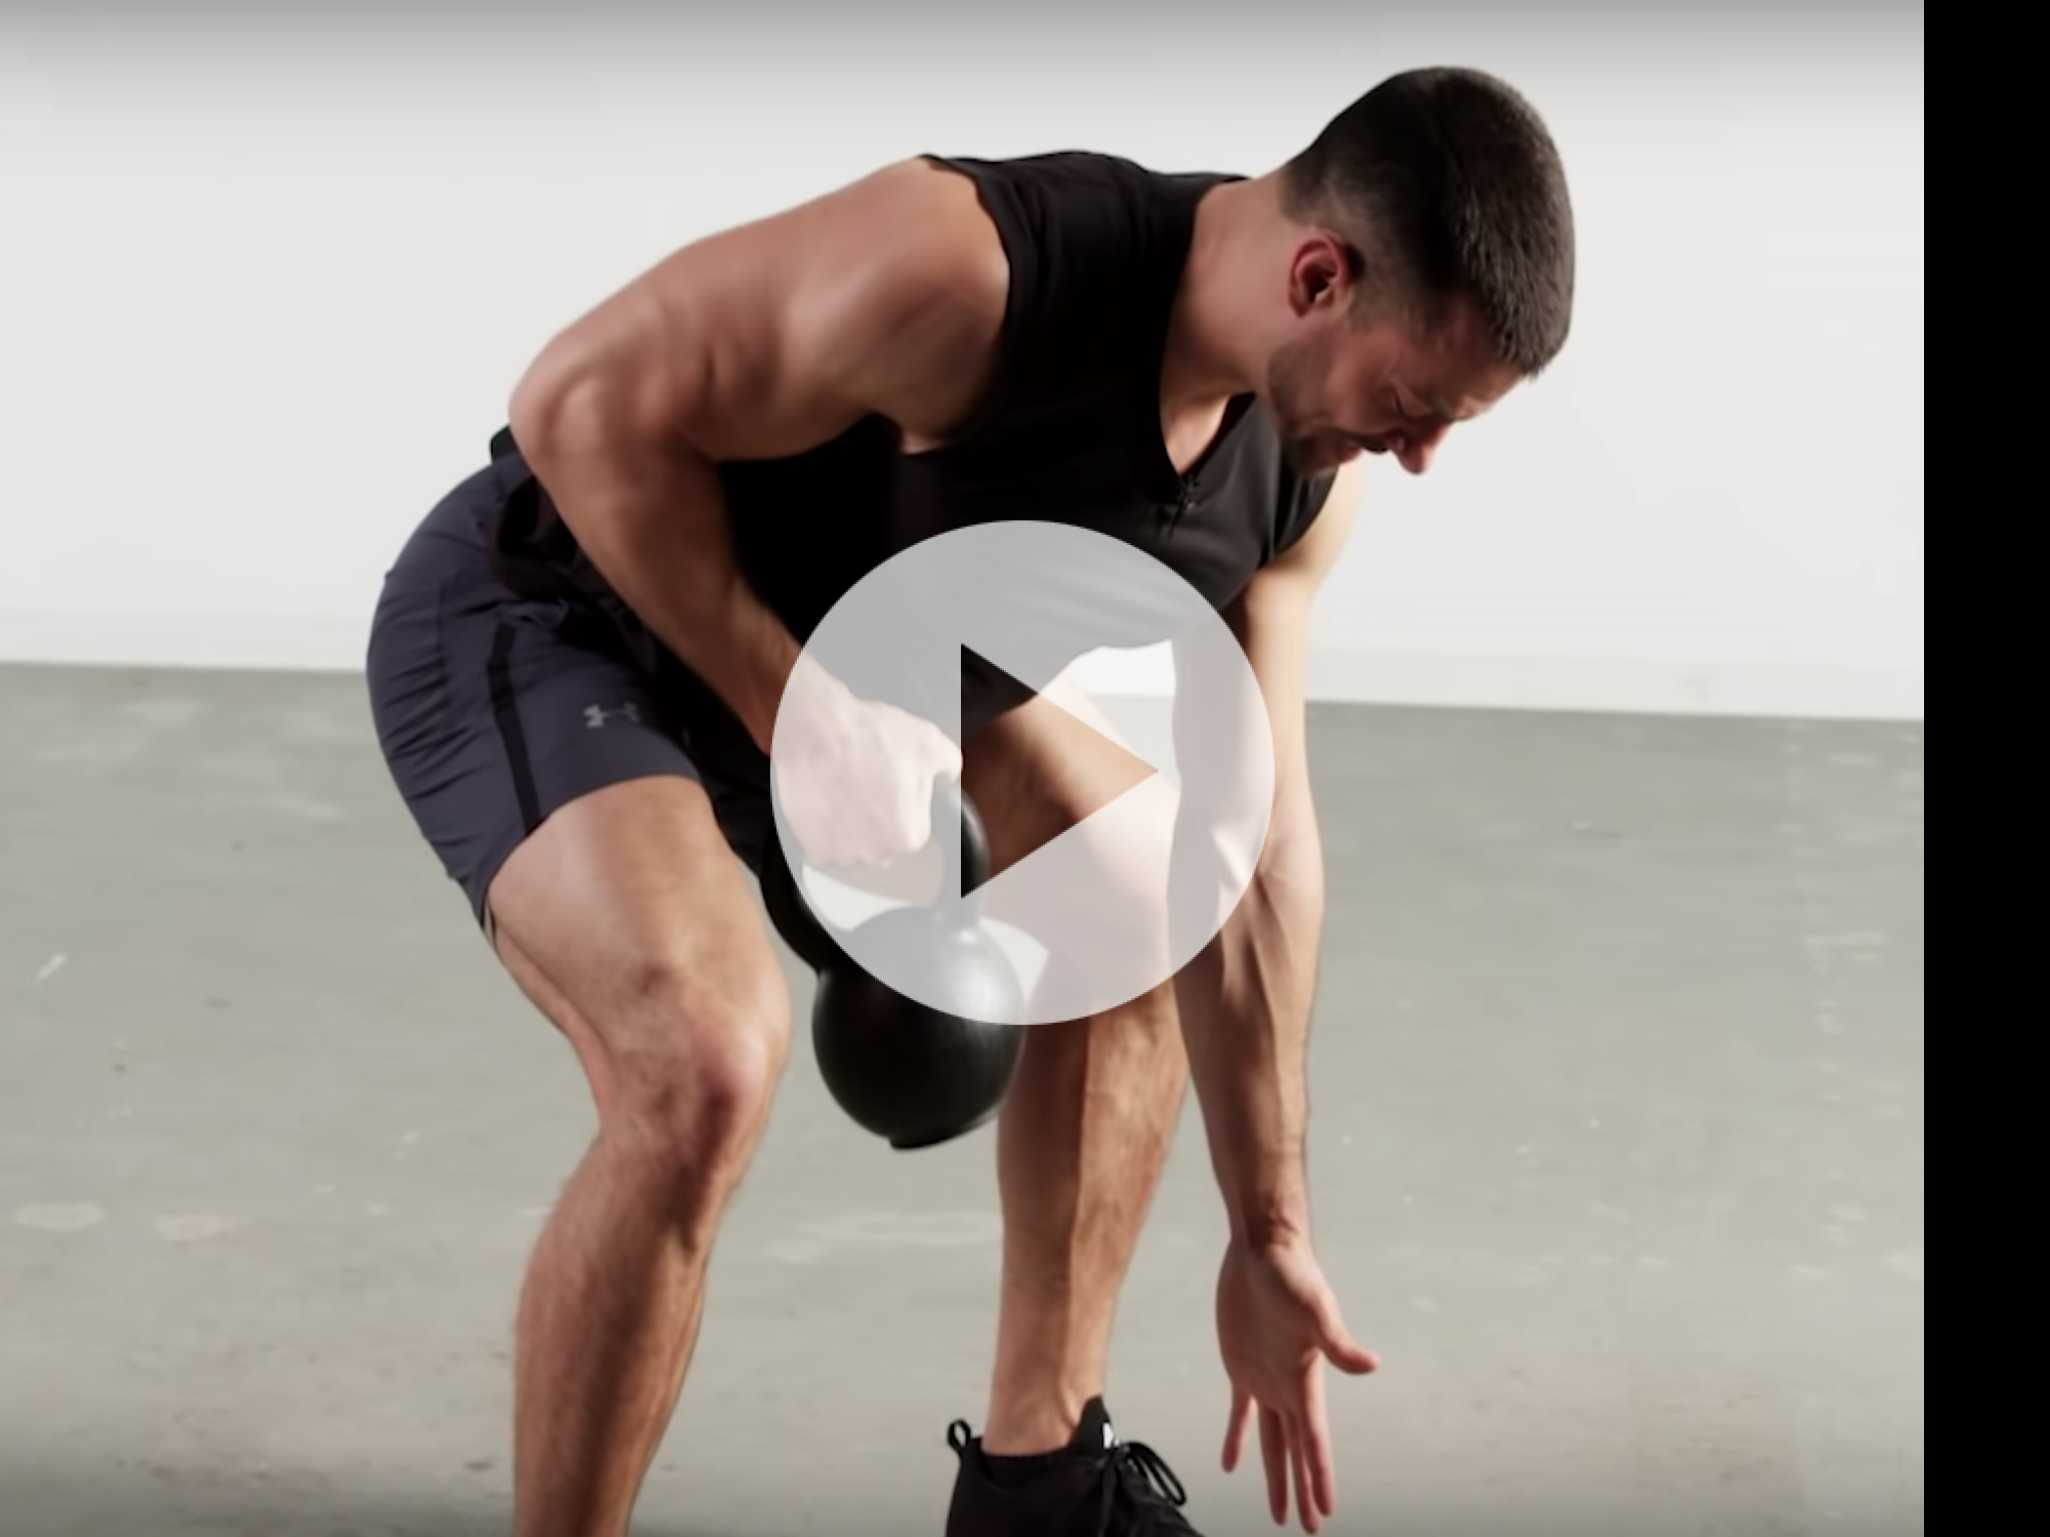 Muscle Monday: 10-Minute Total Body Kettleball Blast